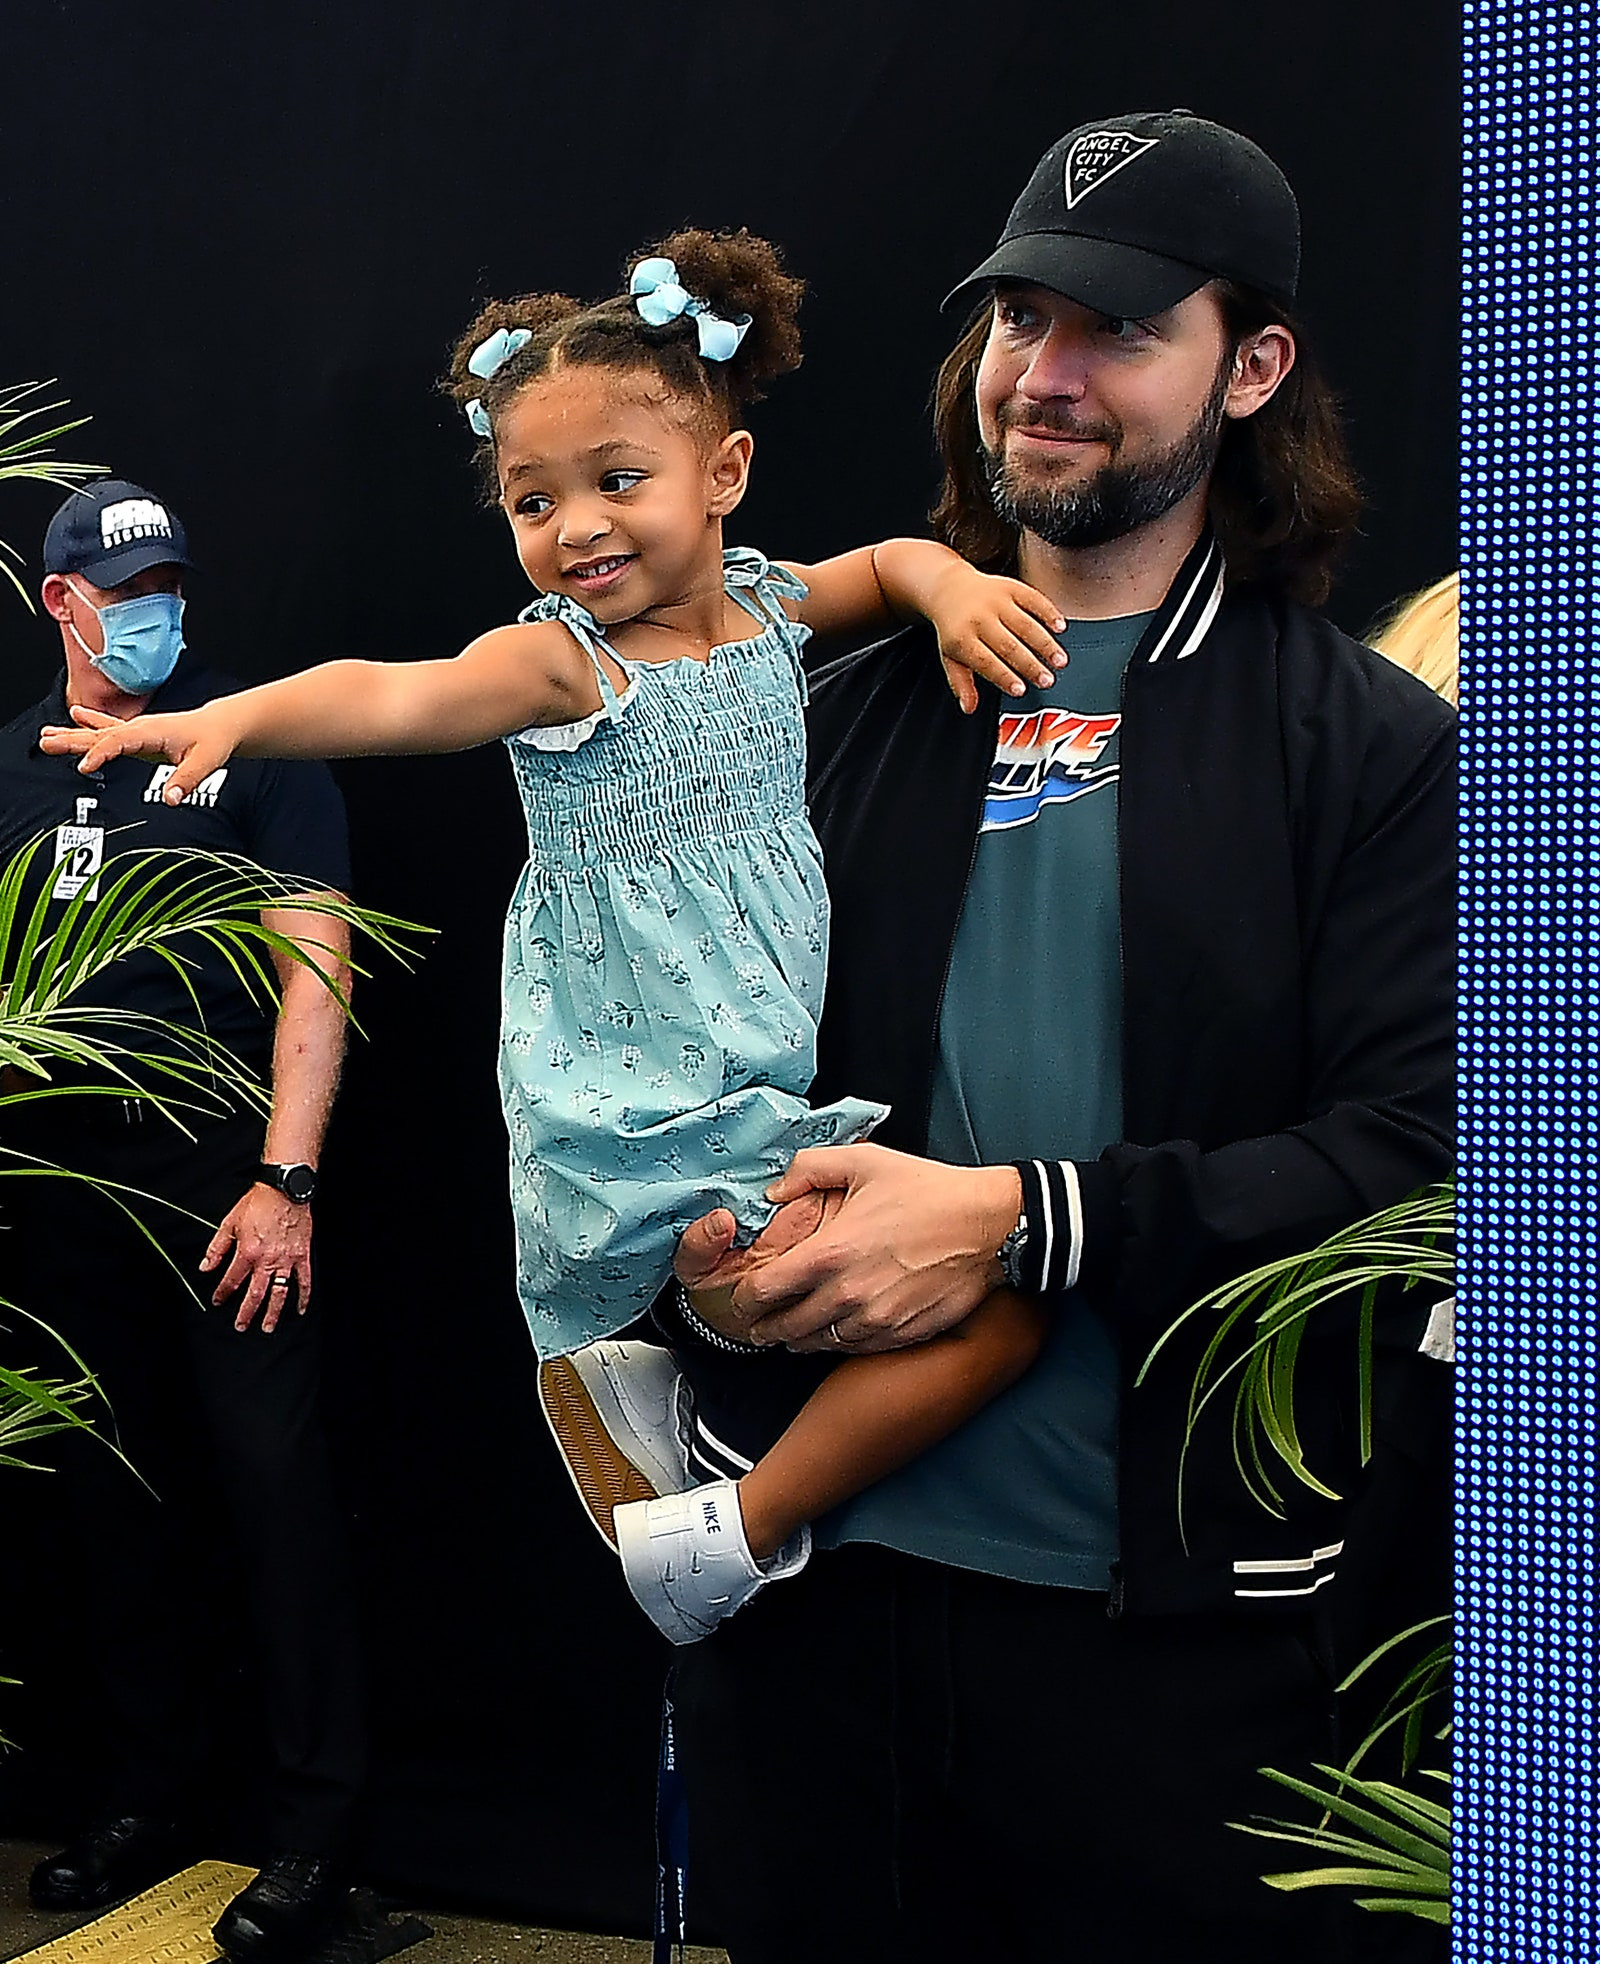 ADELAIDE AUSTRALIA JANUARY 29 Serena Williams of the USA daughter Alexis Olympia Ohanian Jr waits with dad Alexis...